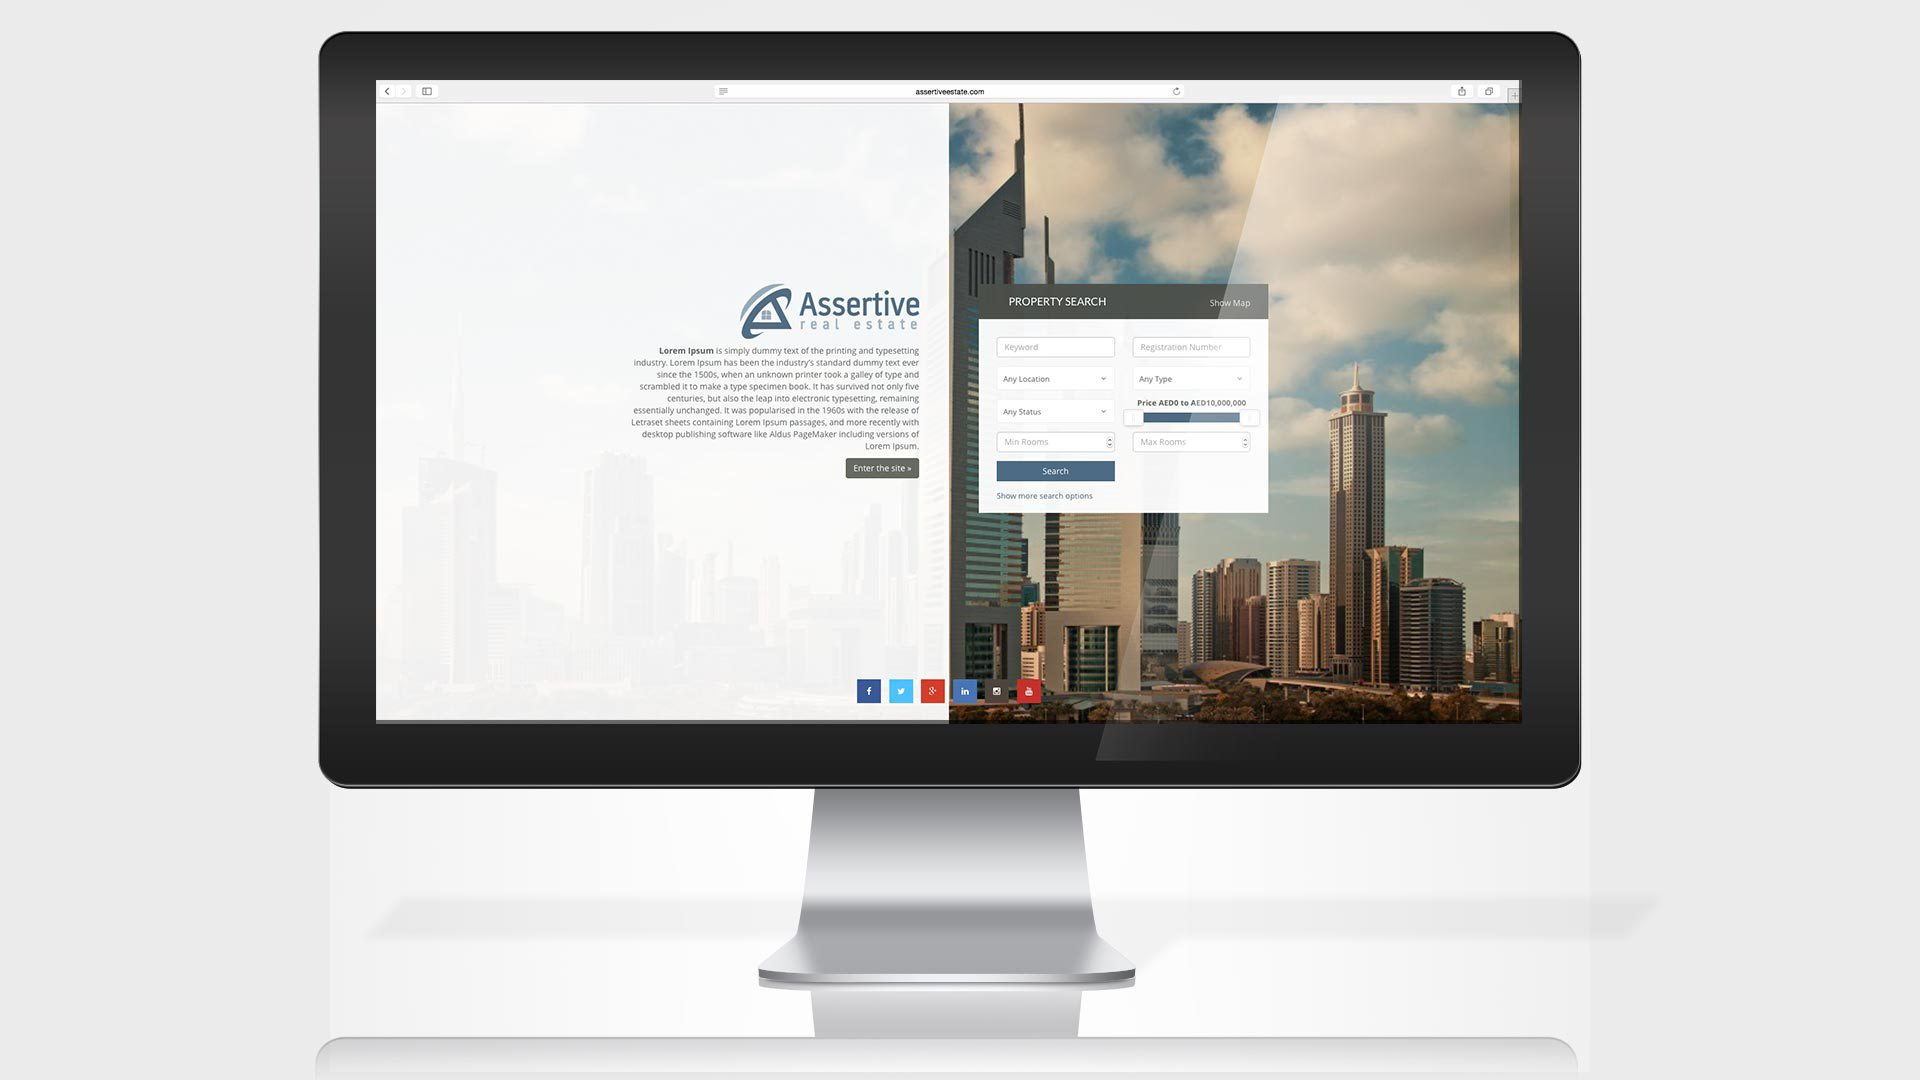 assertive-estate-website-intro-page